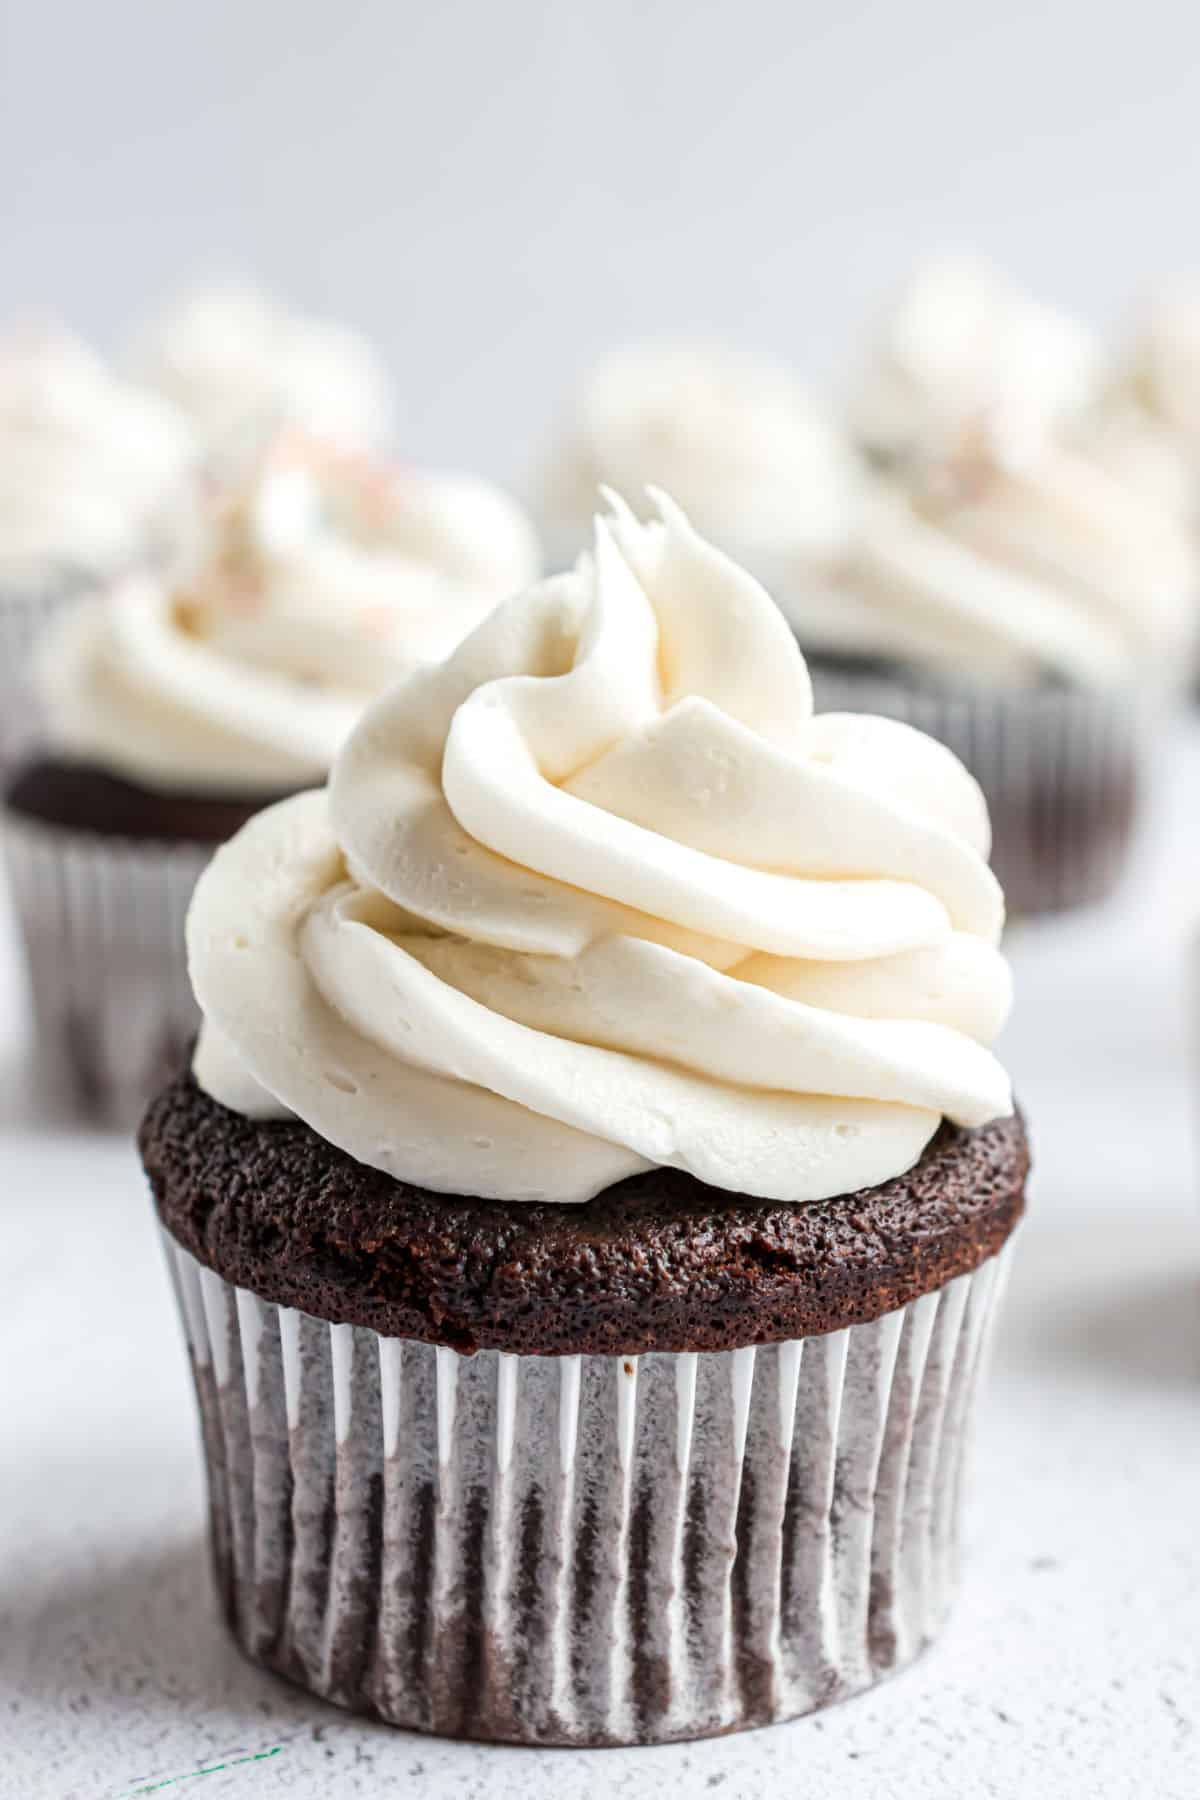 Chocolate cupcake with vanilla frosting.